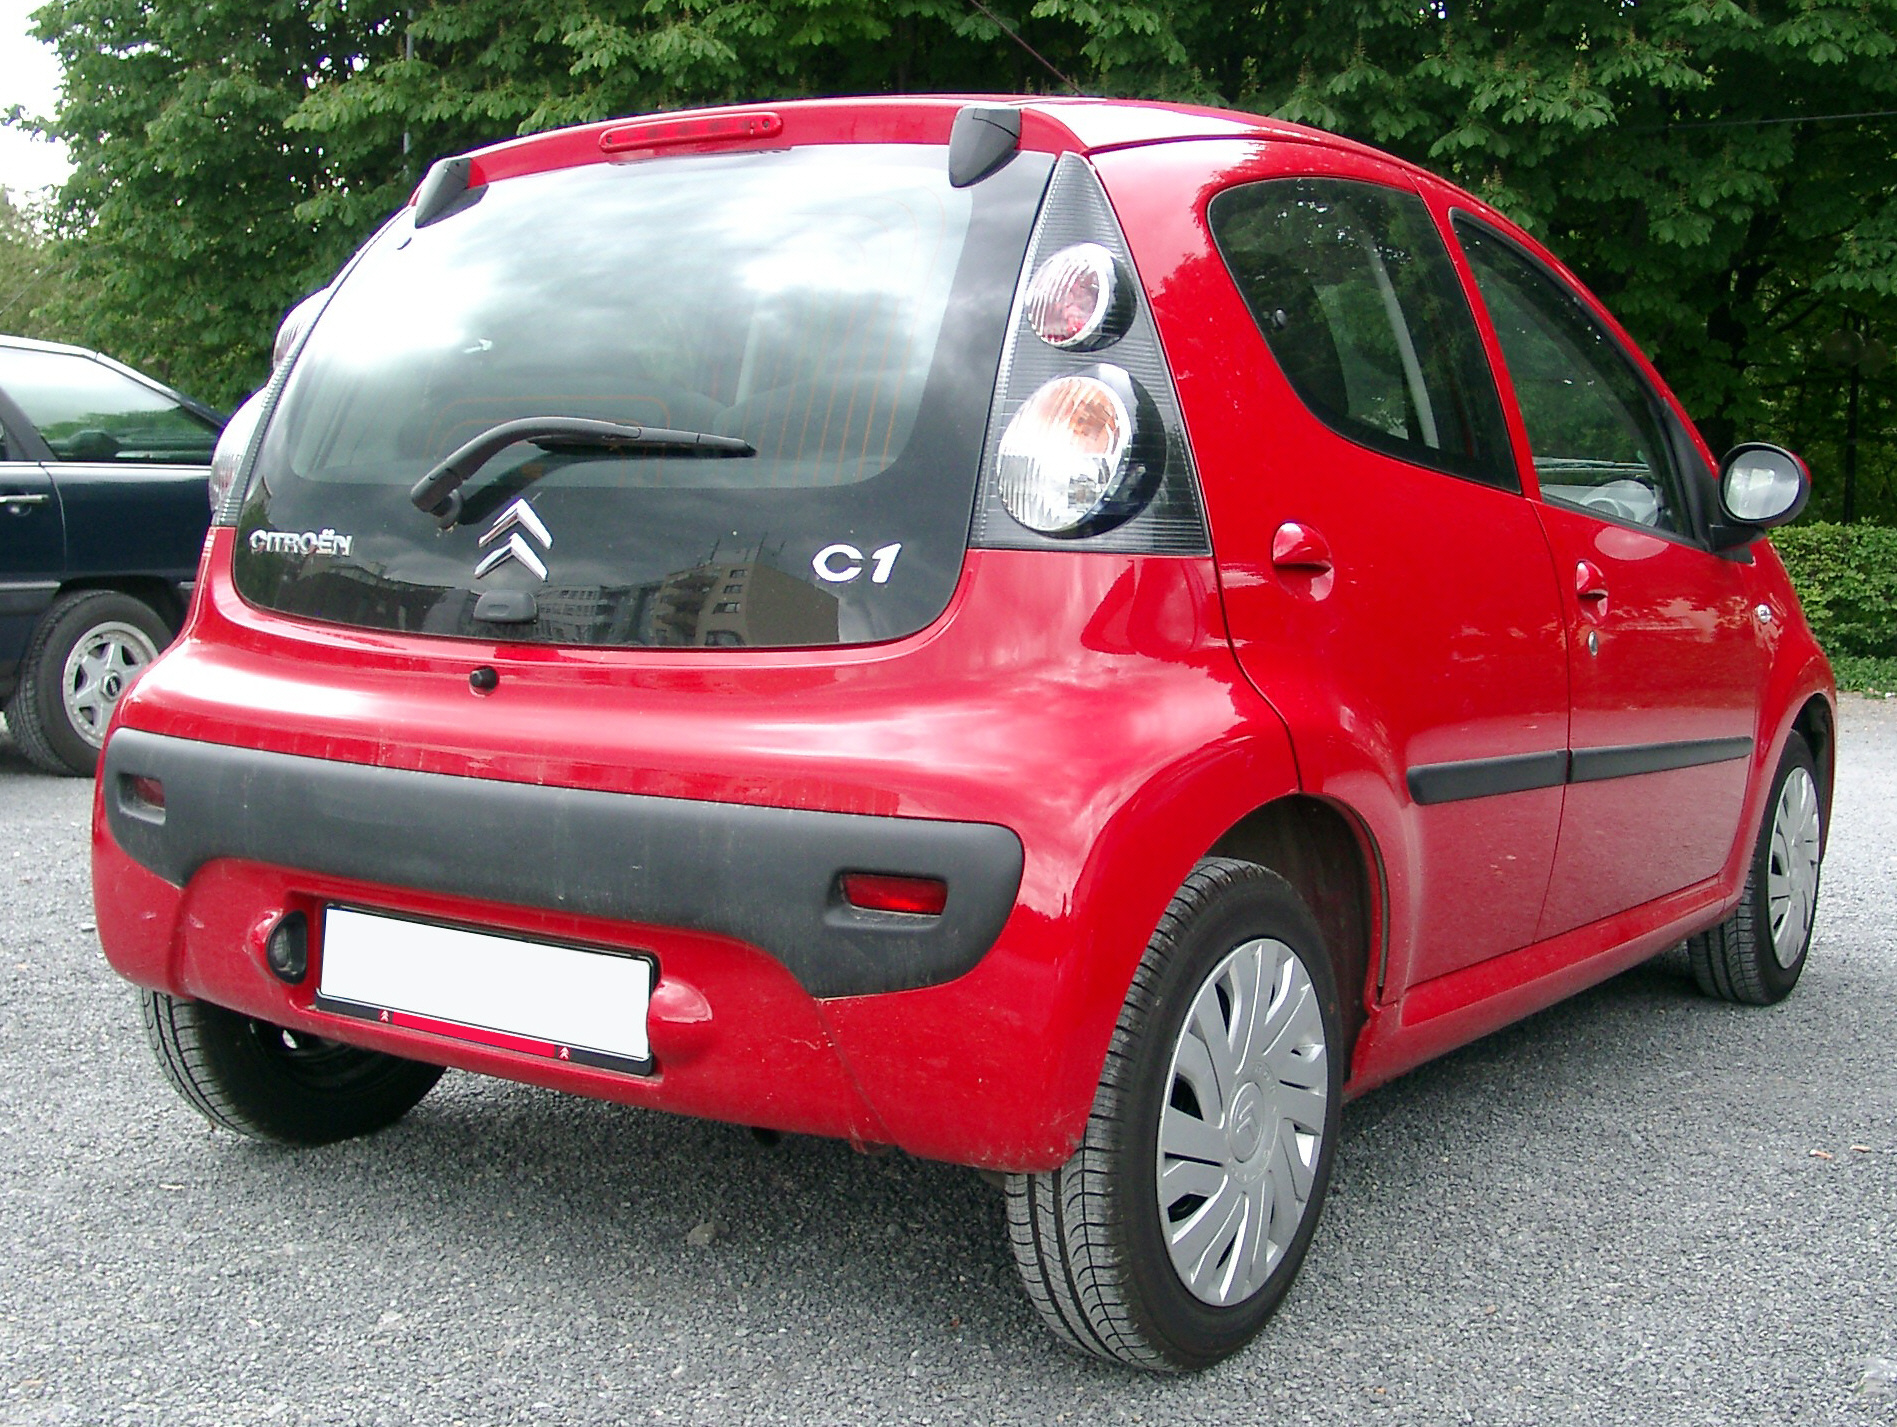 File:Citroen C1 rear 20070511.jpg - Wikimedia Commons